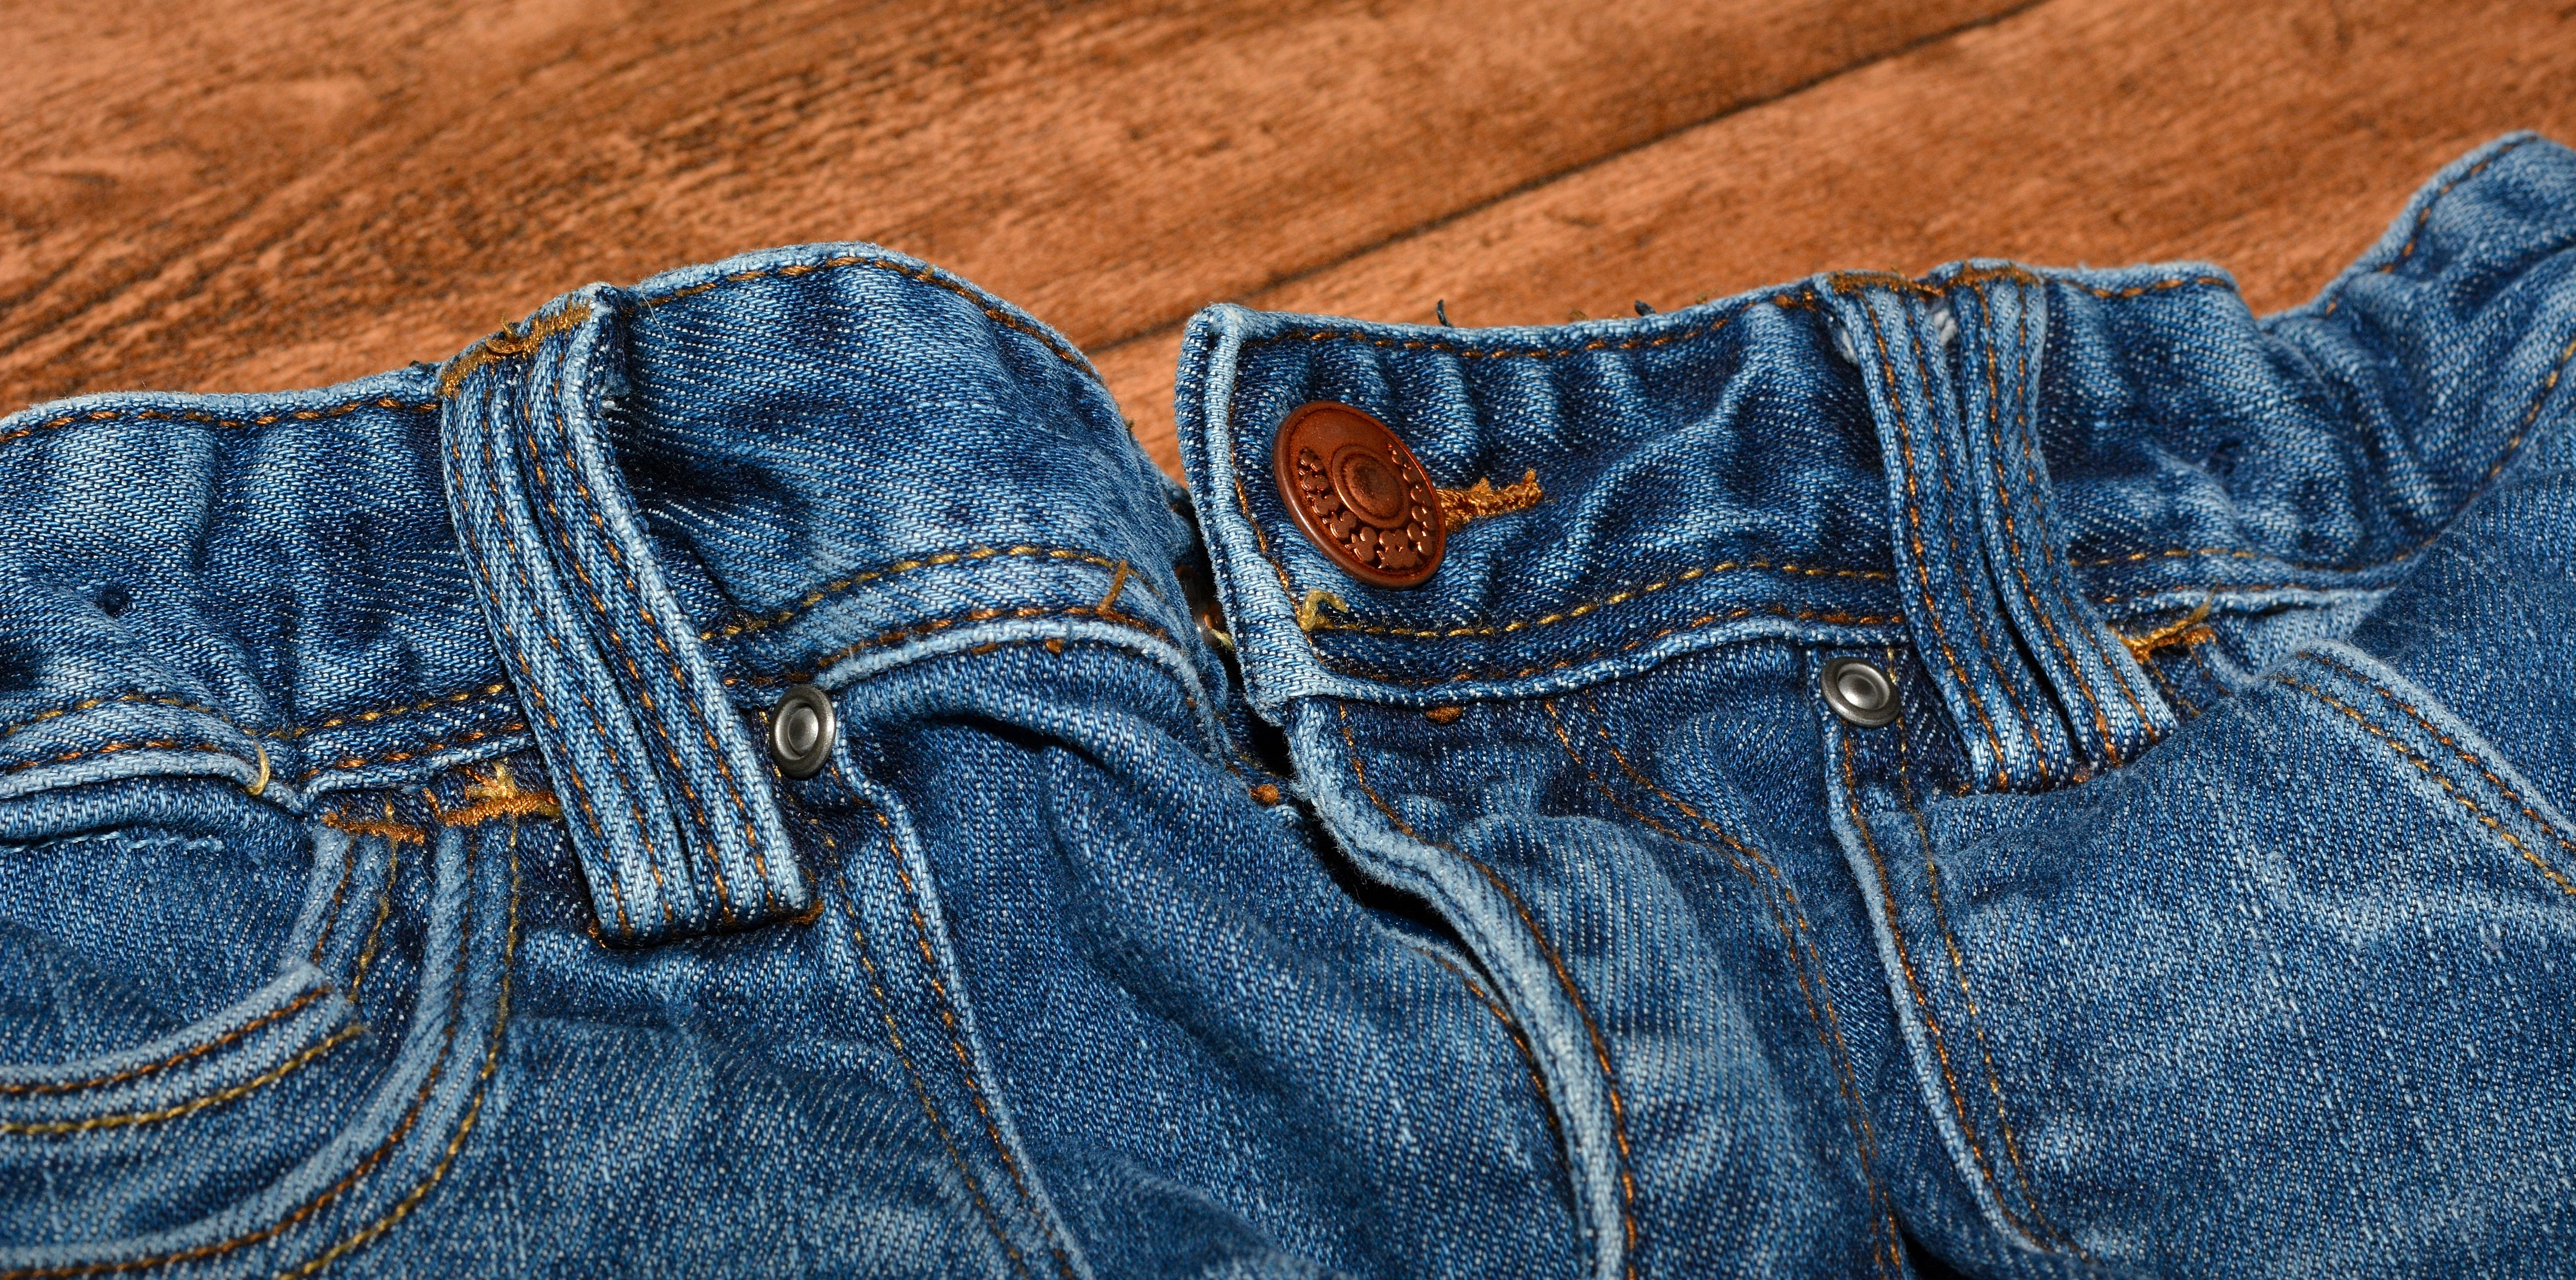 Jeans i Denim tekstil